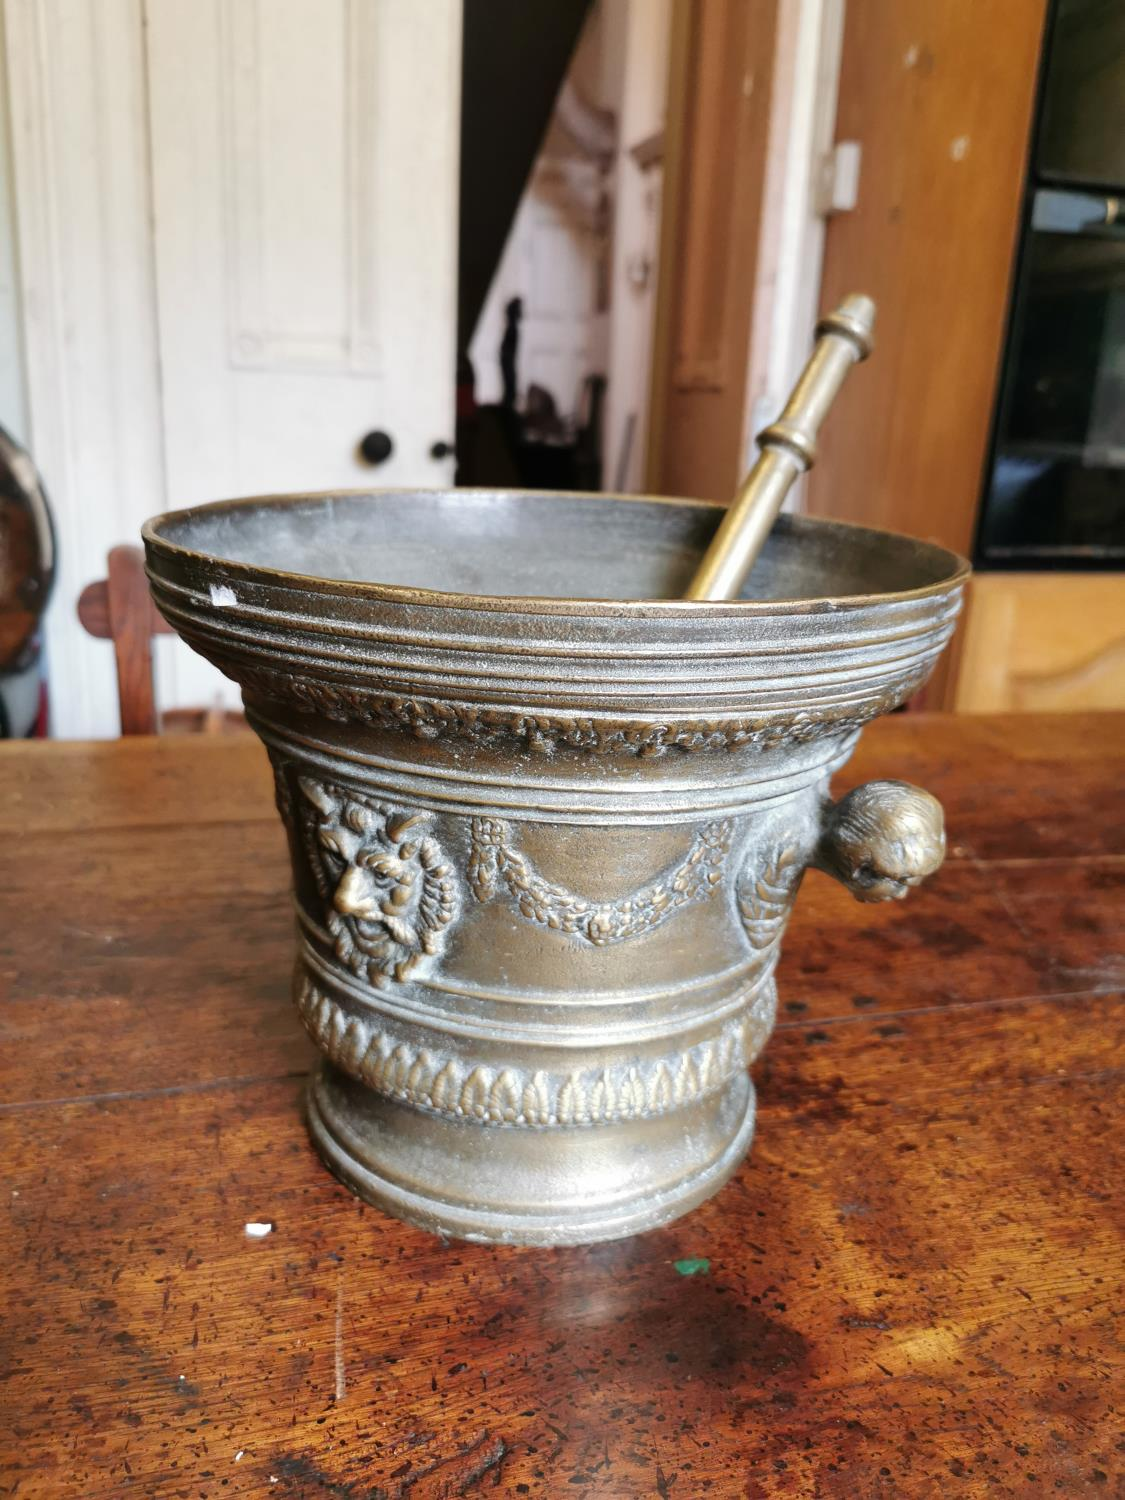 19th. C. brass pestle and mortar